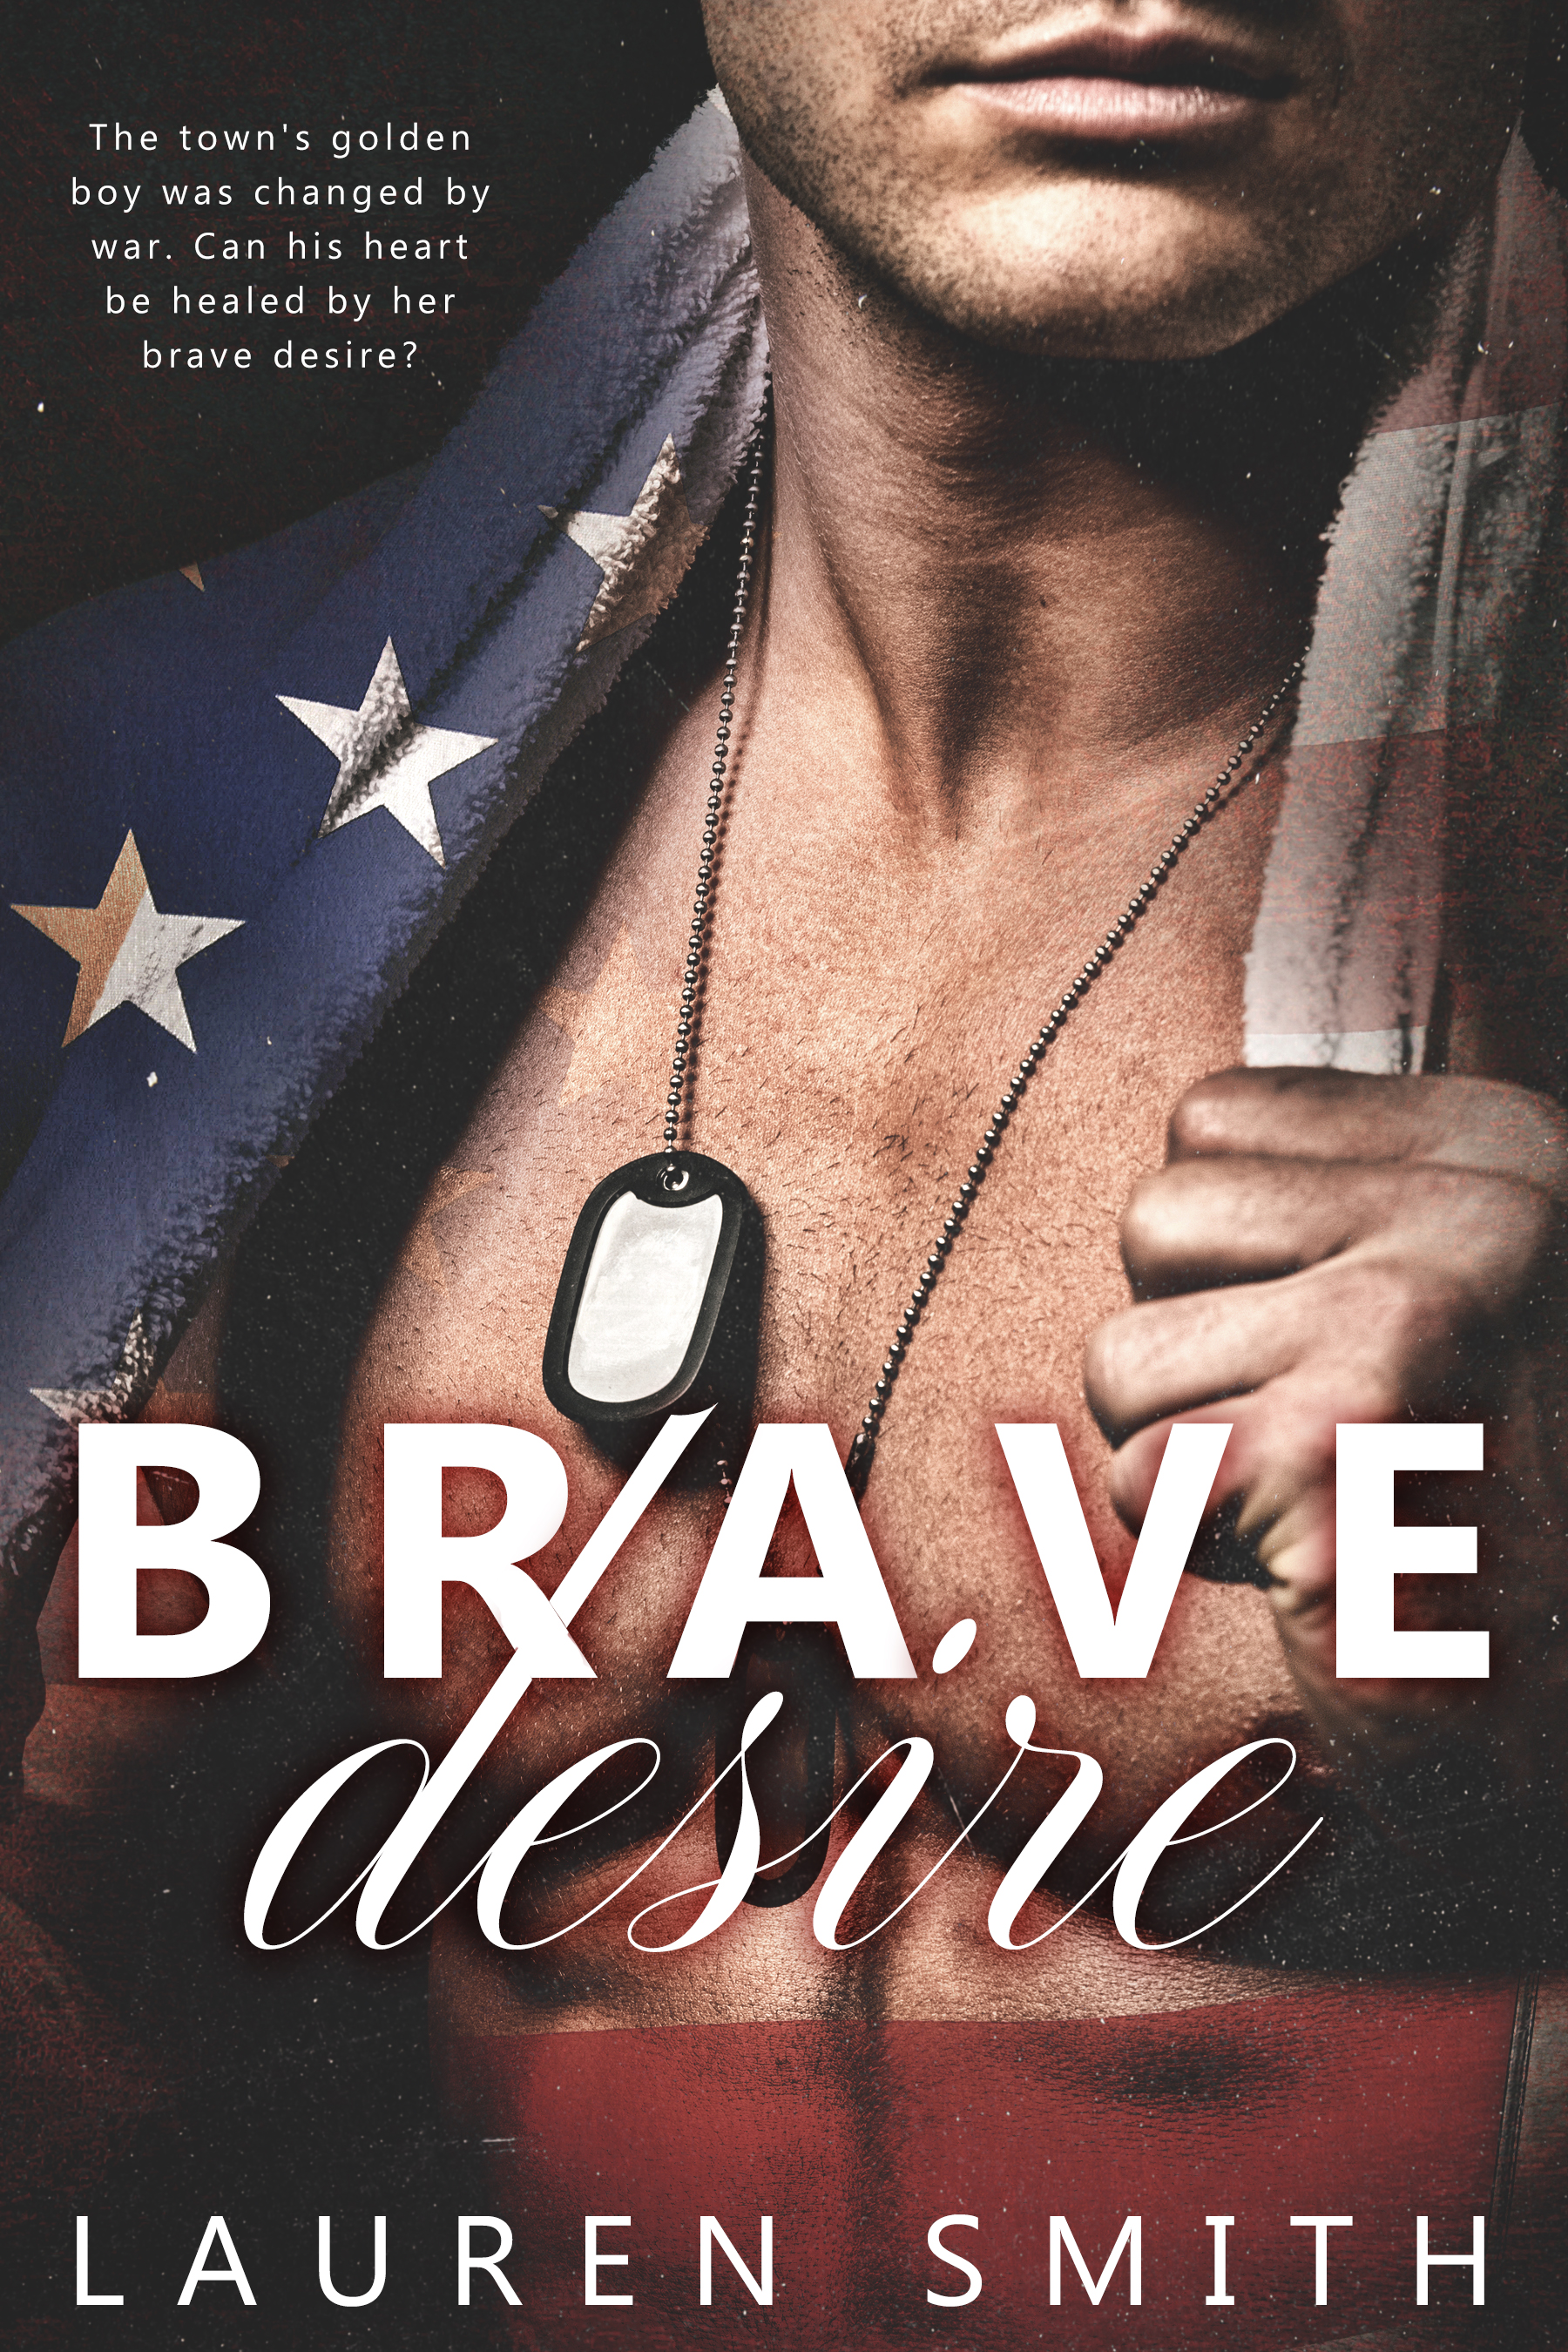 Brave Desire by Lauren Smith